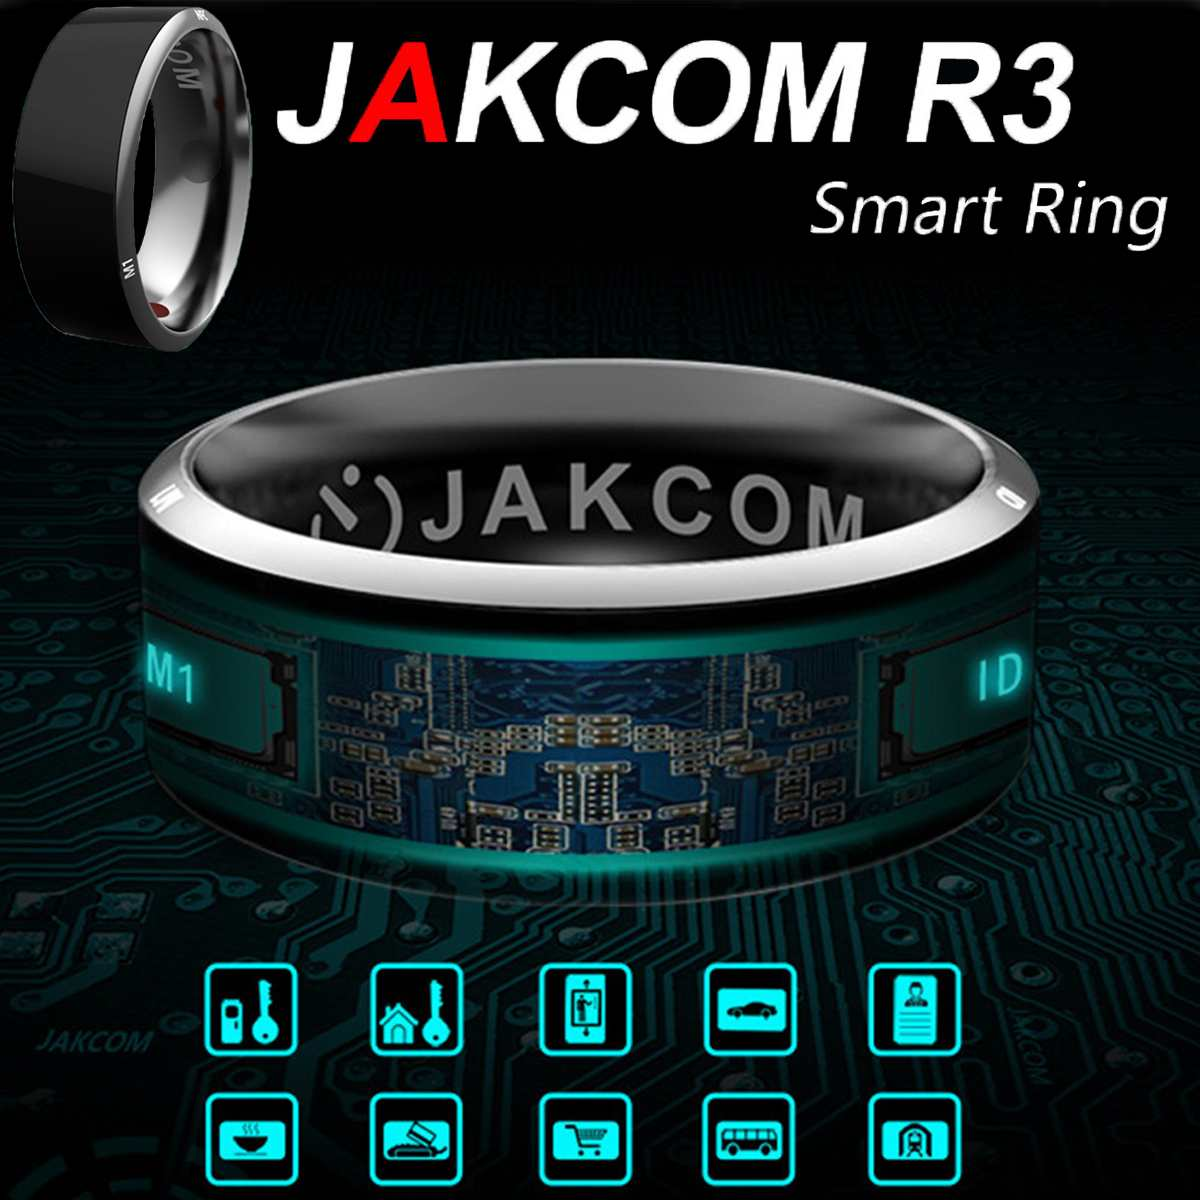 Smart-Ring Finger-Wear Wearable NFC Mobile-Phone Android for IOS Windows R3 Magic title=